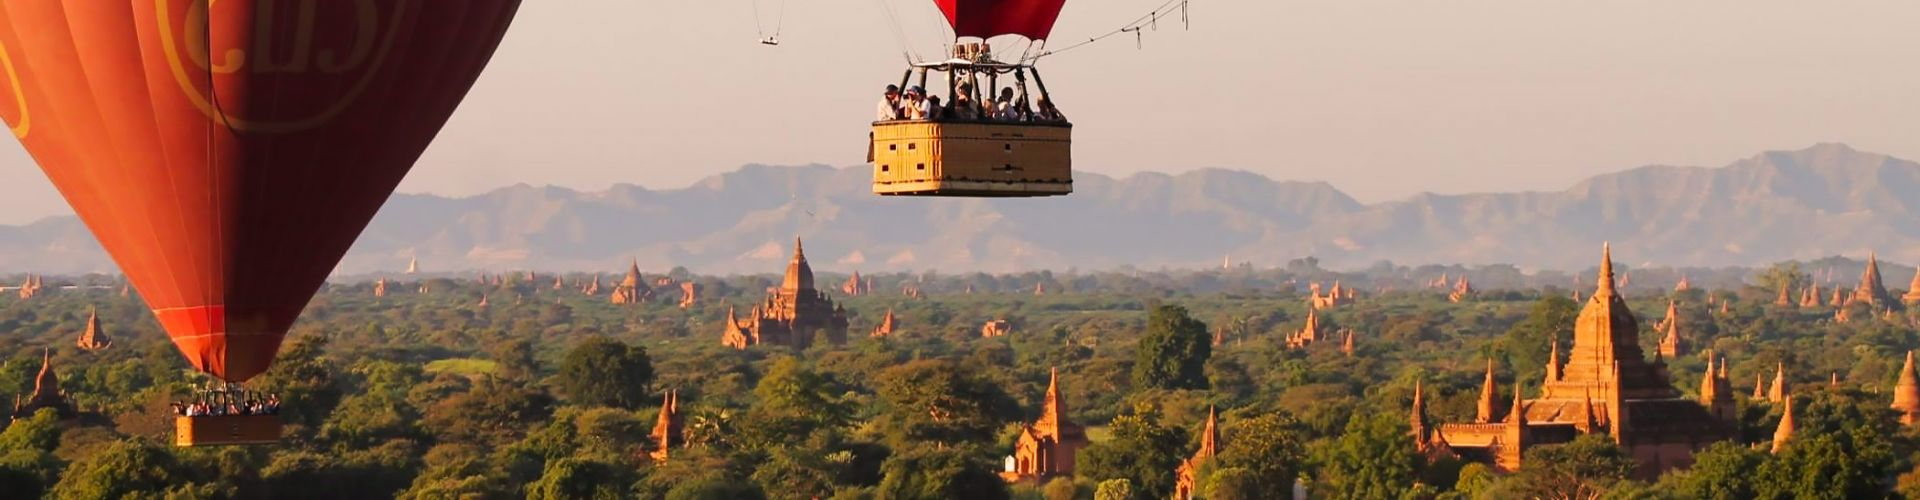 Balloon Over Bagan - Myanmar Travel